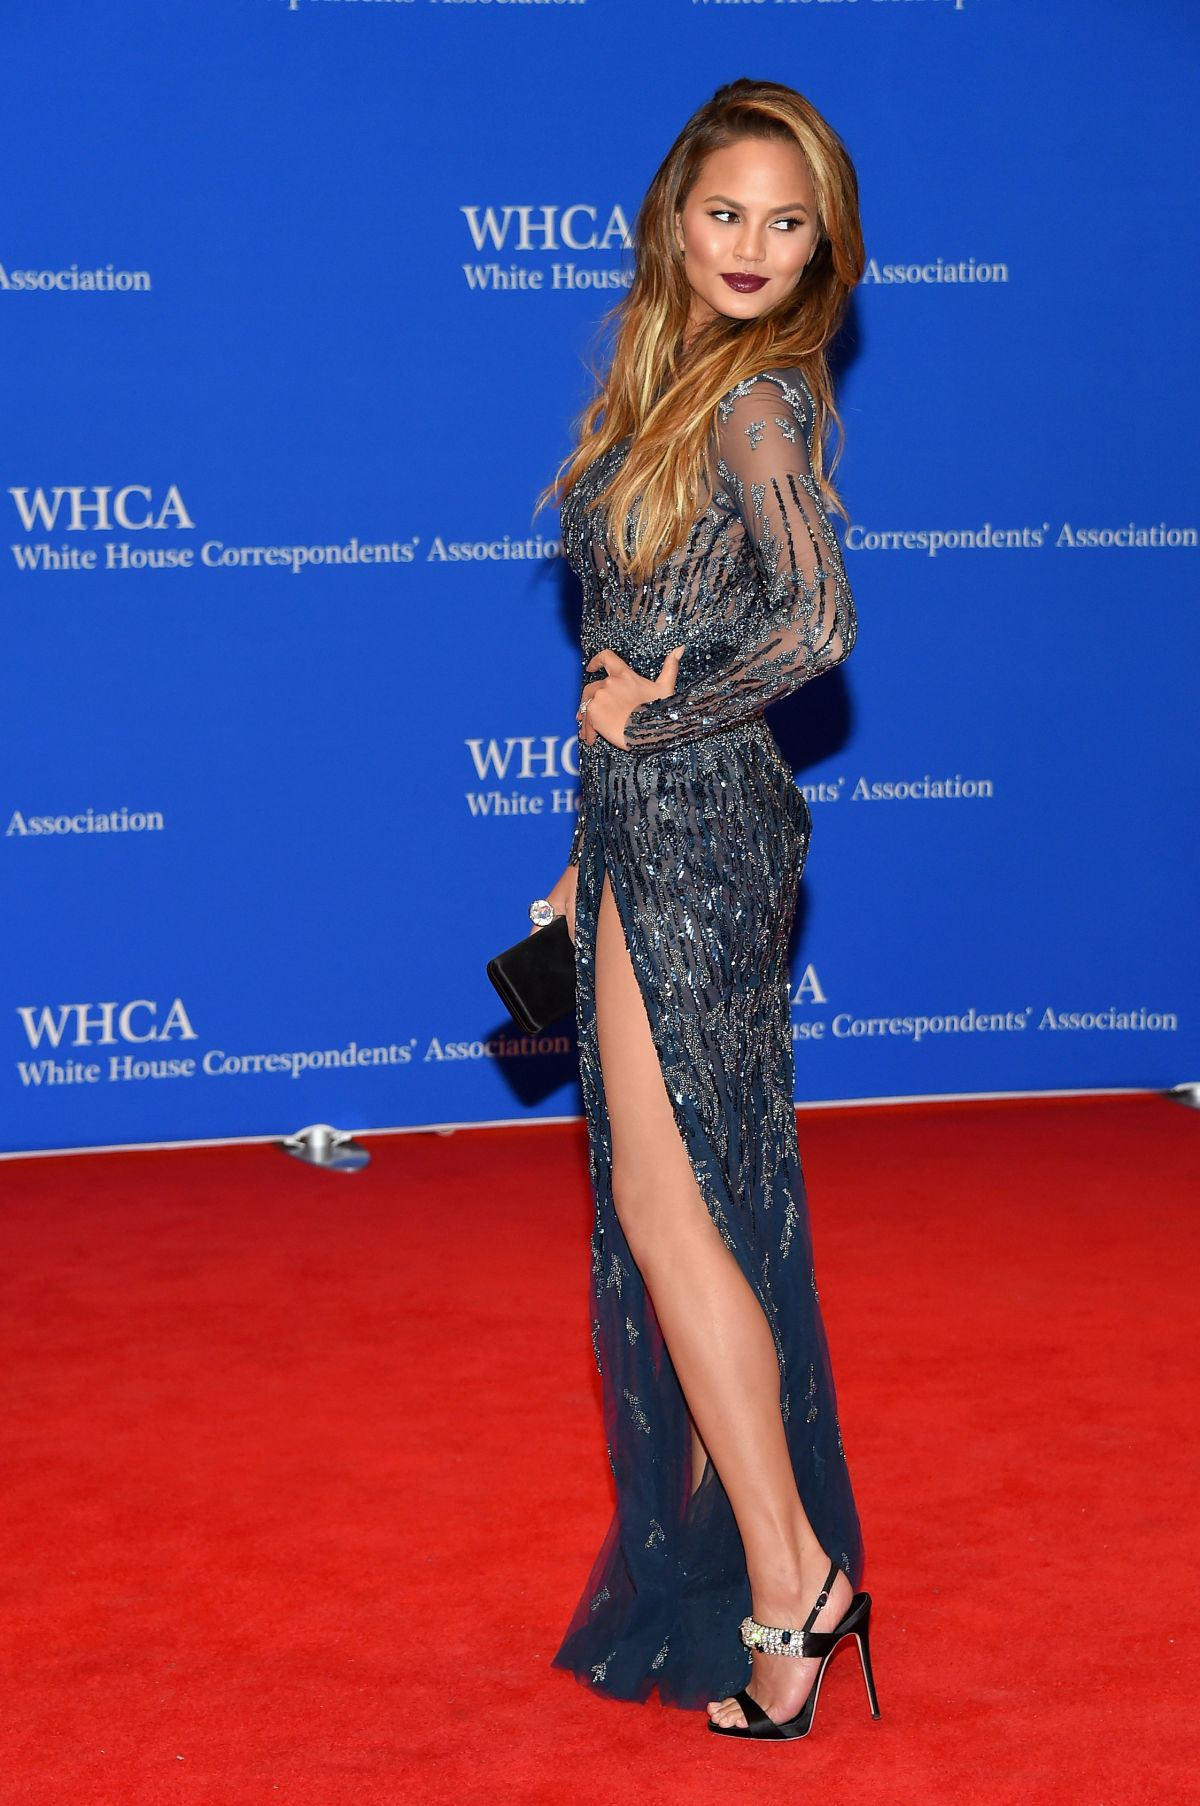 CHRISSY TEIGEN at White House Correspondents Association Dinner in ...